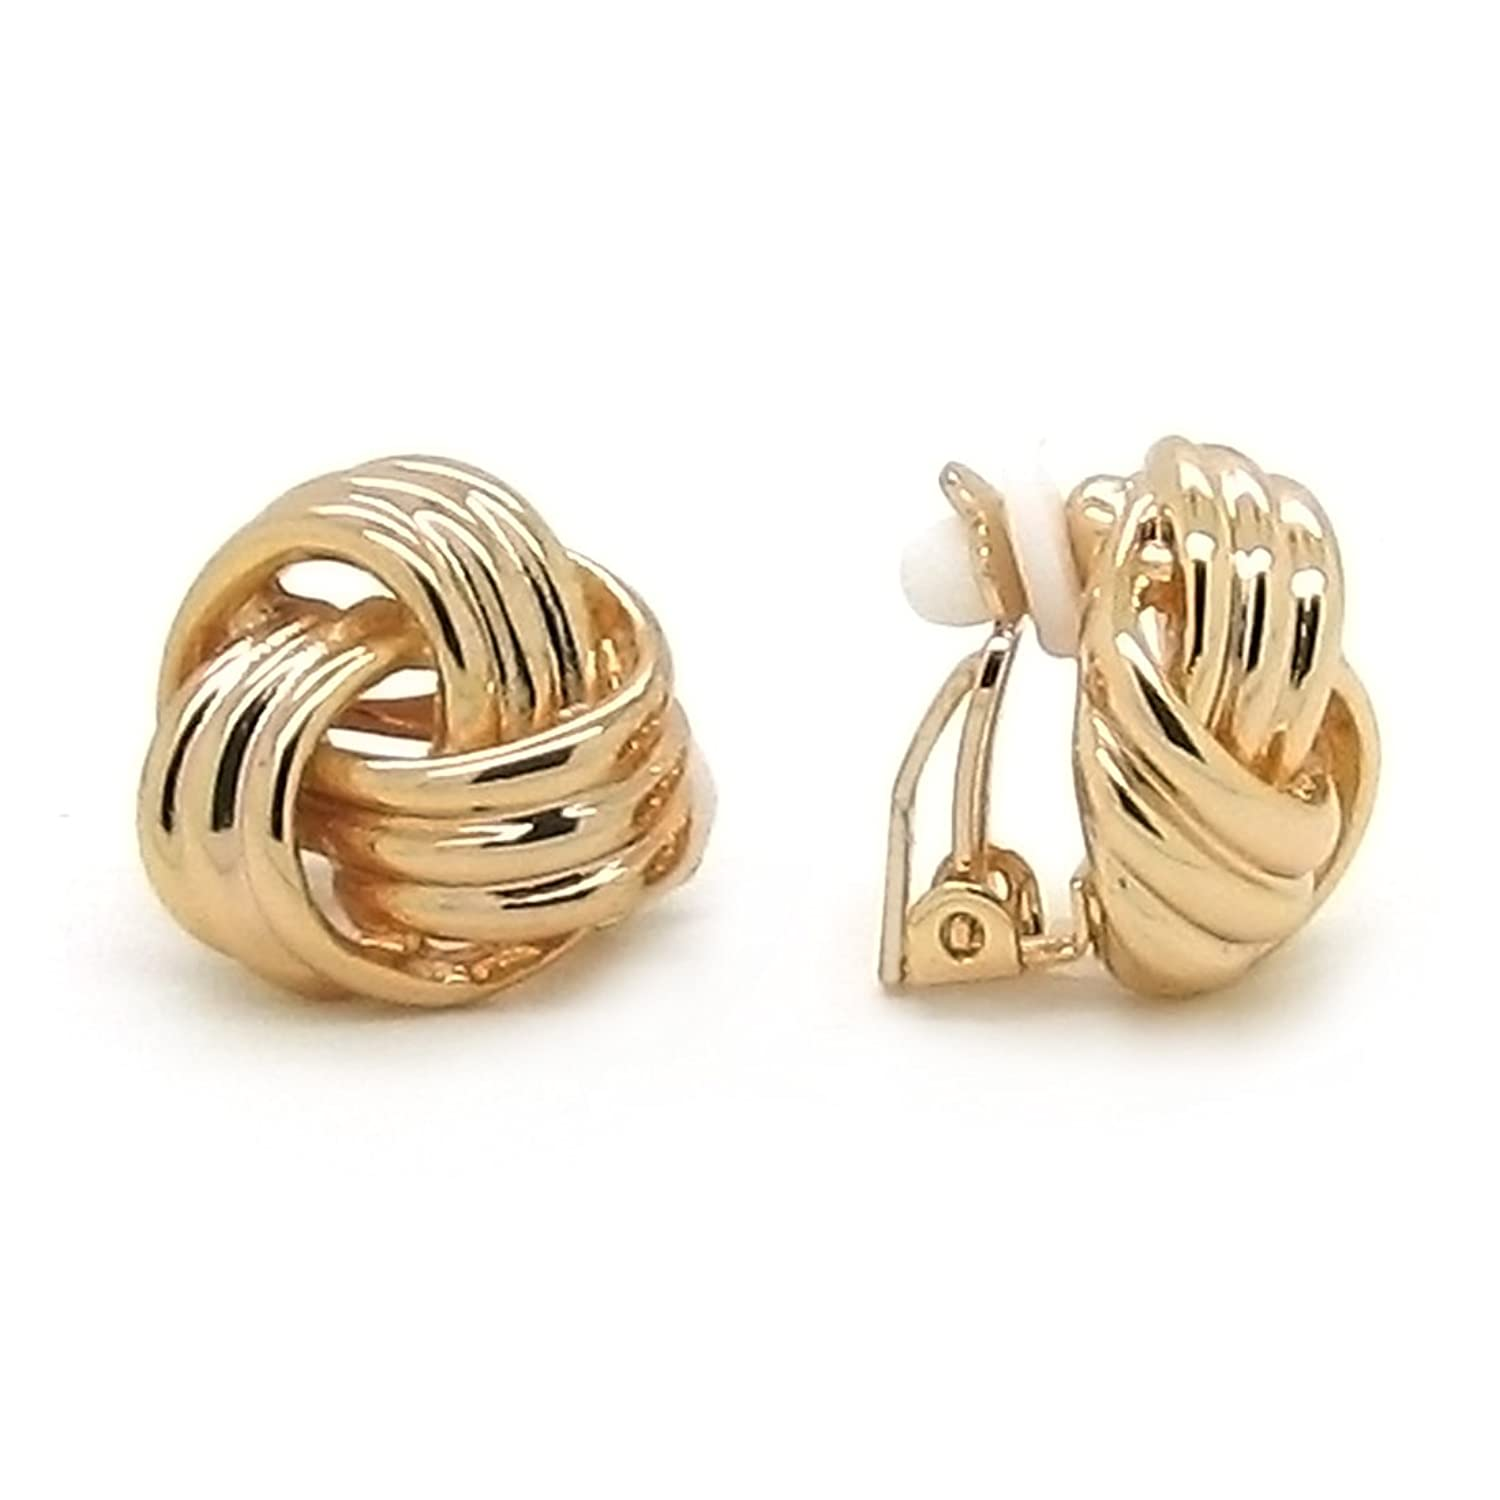 pin design crafted earrings with polished snap pair of beautifully a showcasing back twisted hoop secured